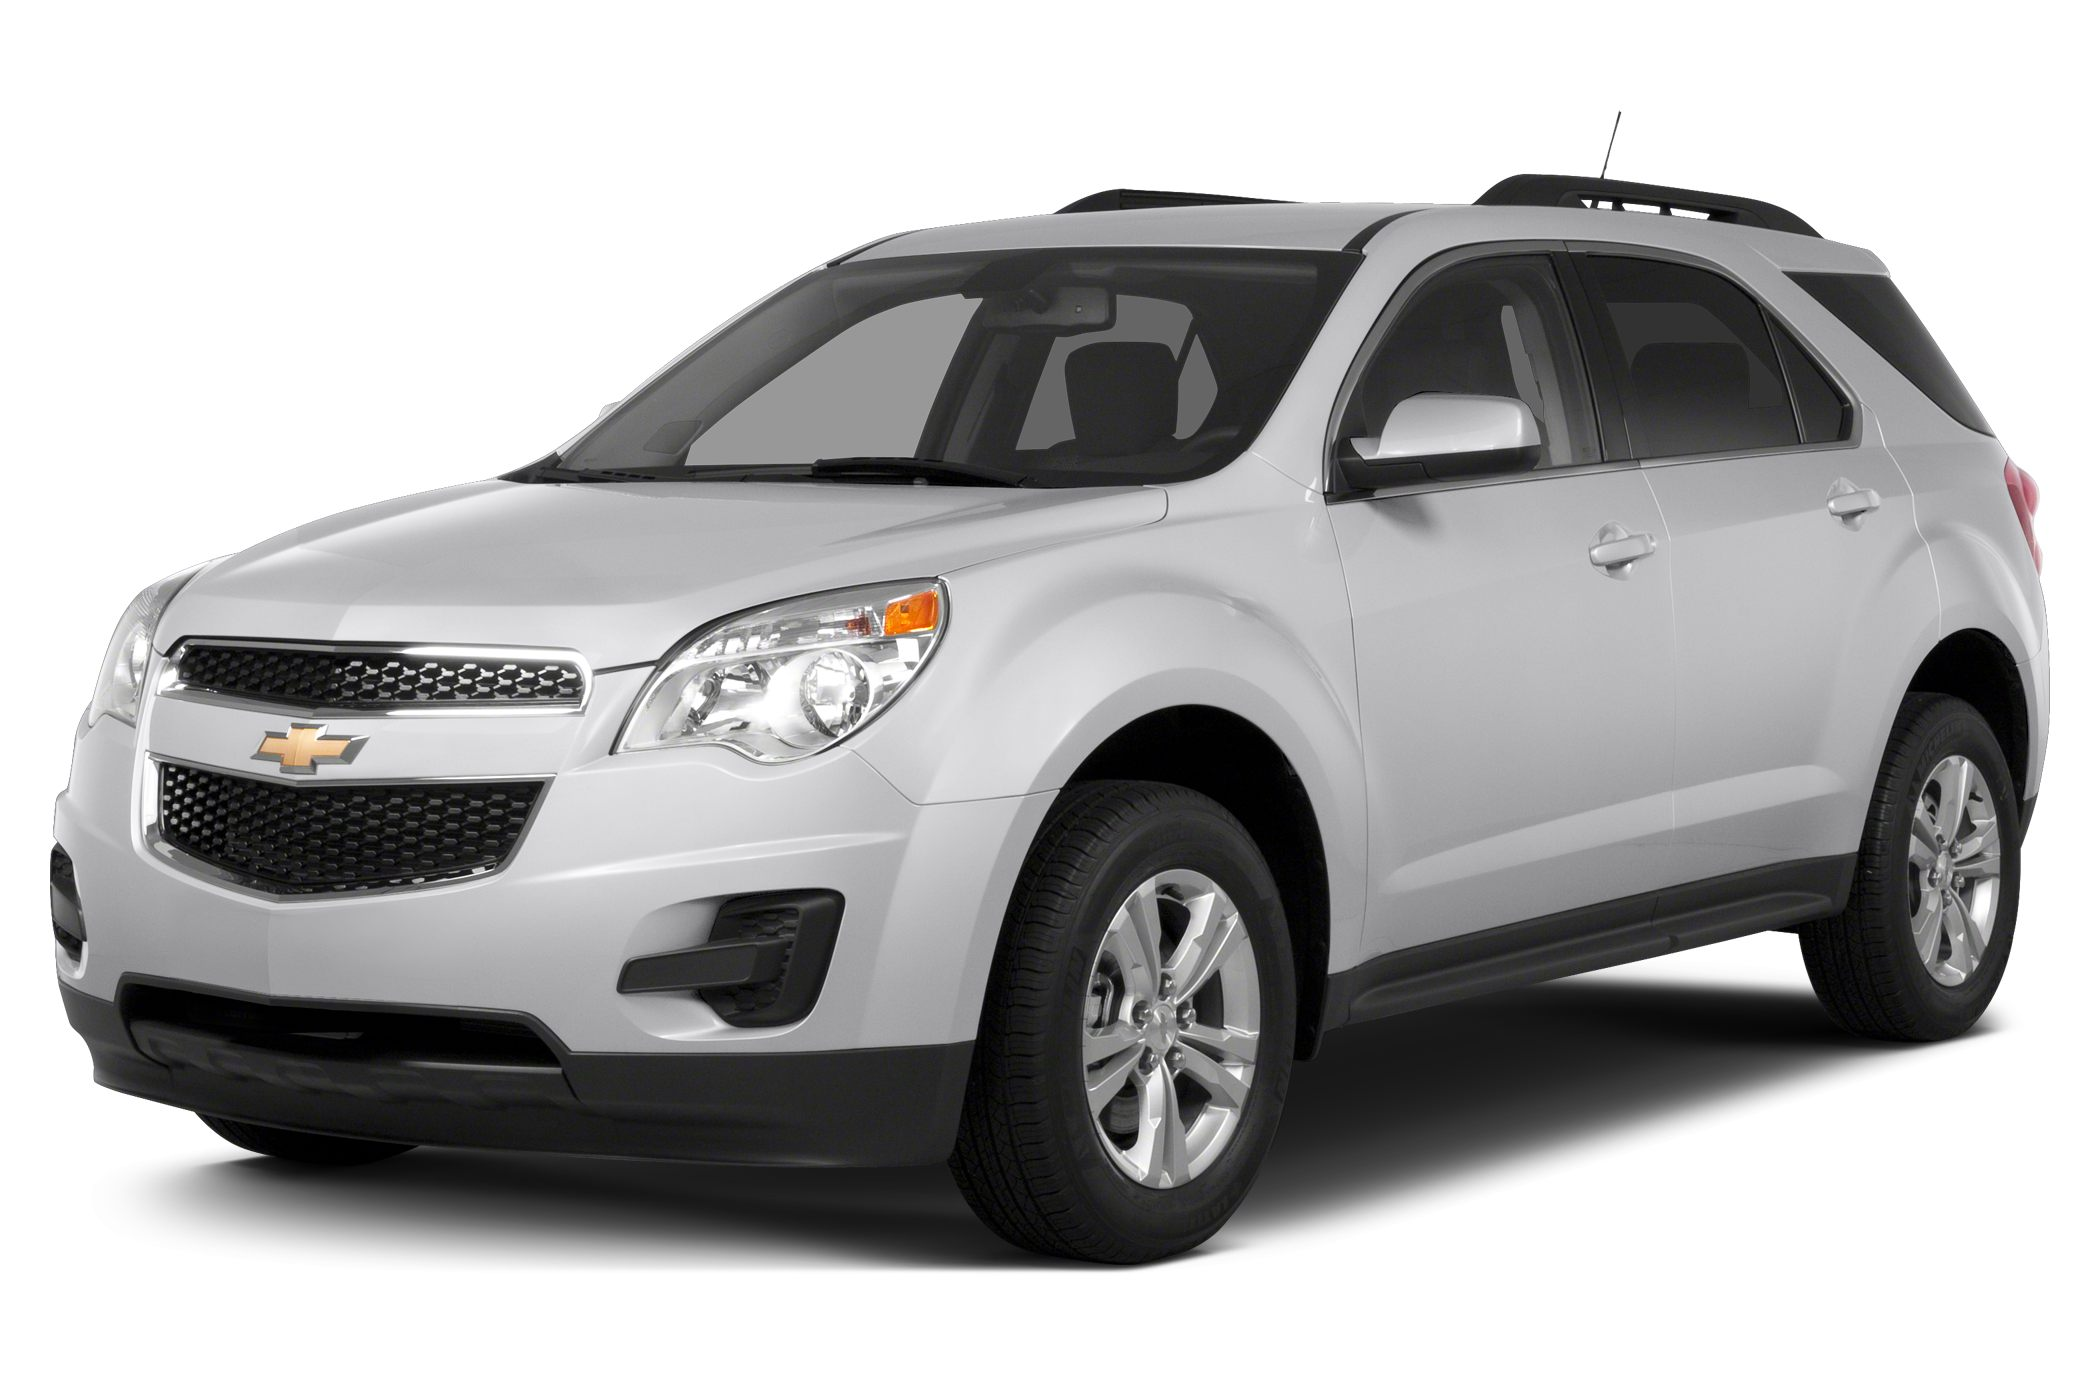 2014 Chevrolet Equinox LTZ SUV for sale in Decatur for $30,990 with 6,885 miles.